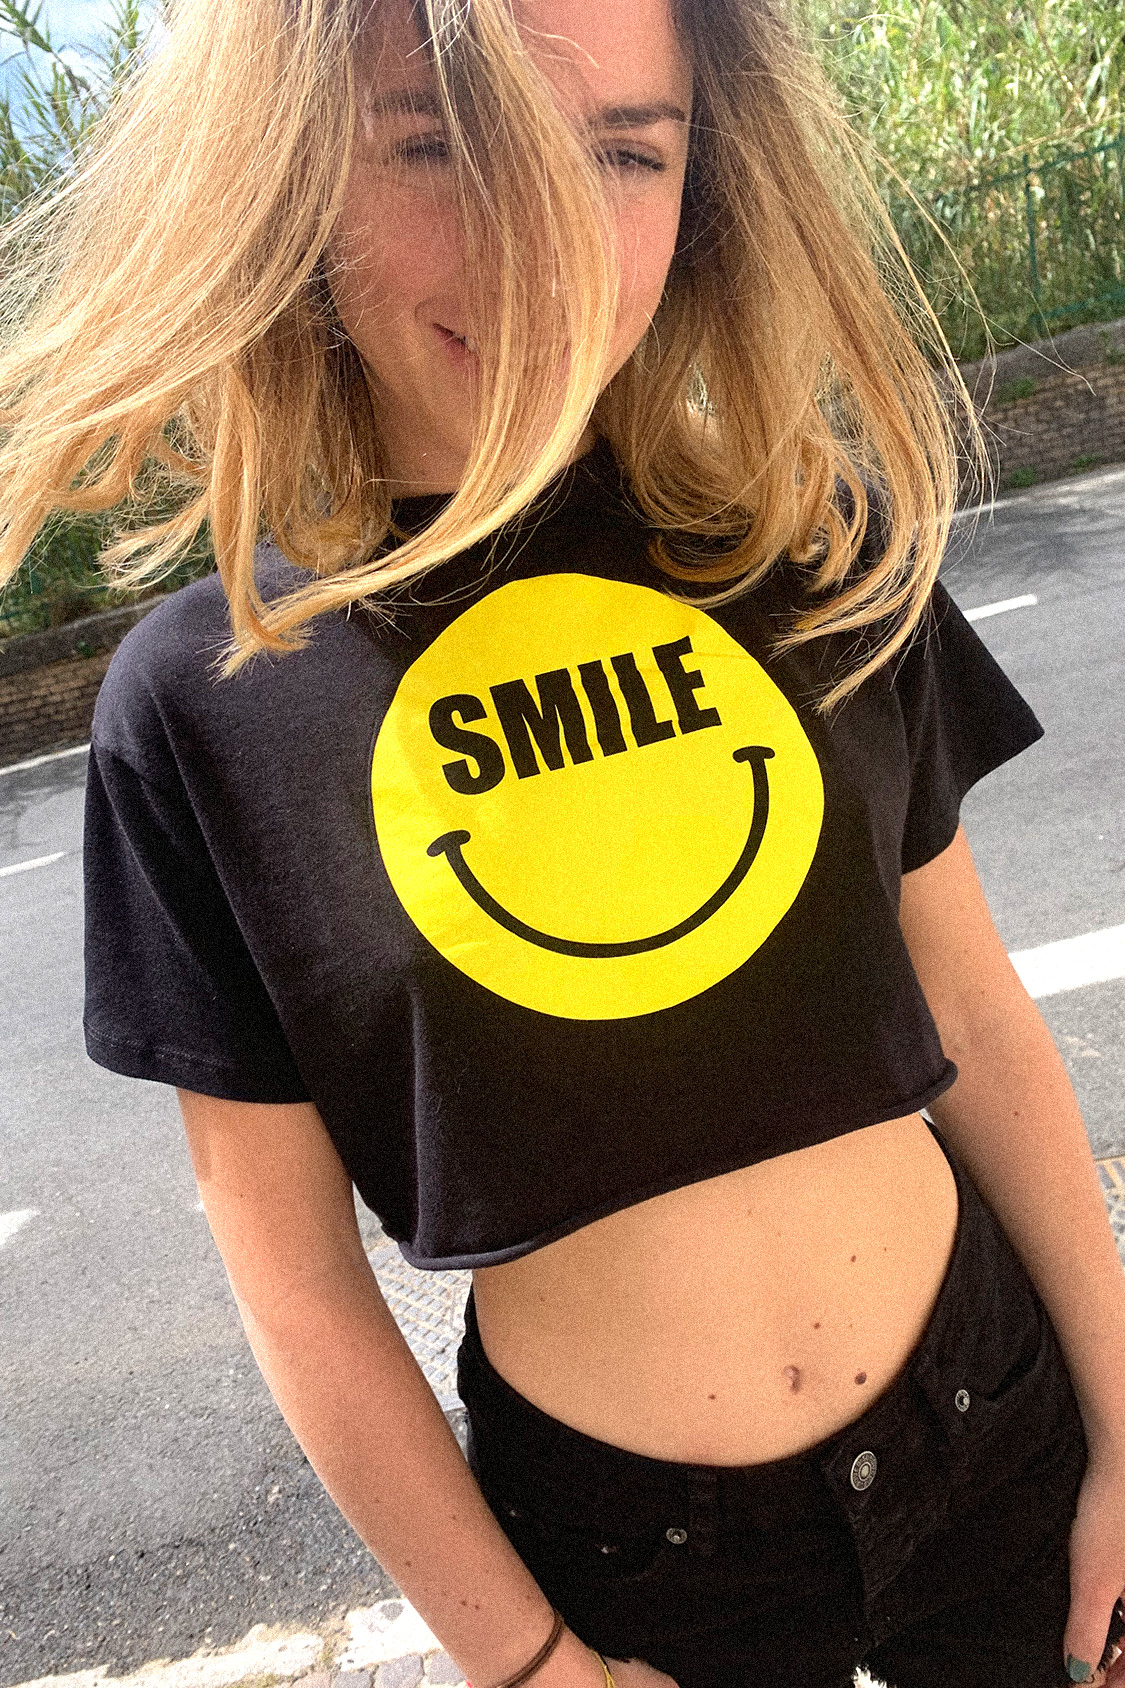 Smile printed t-shirt